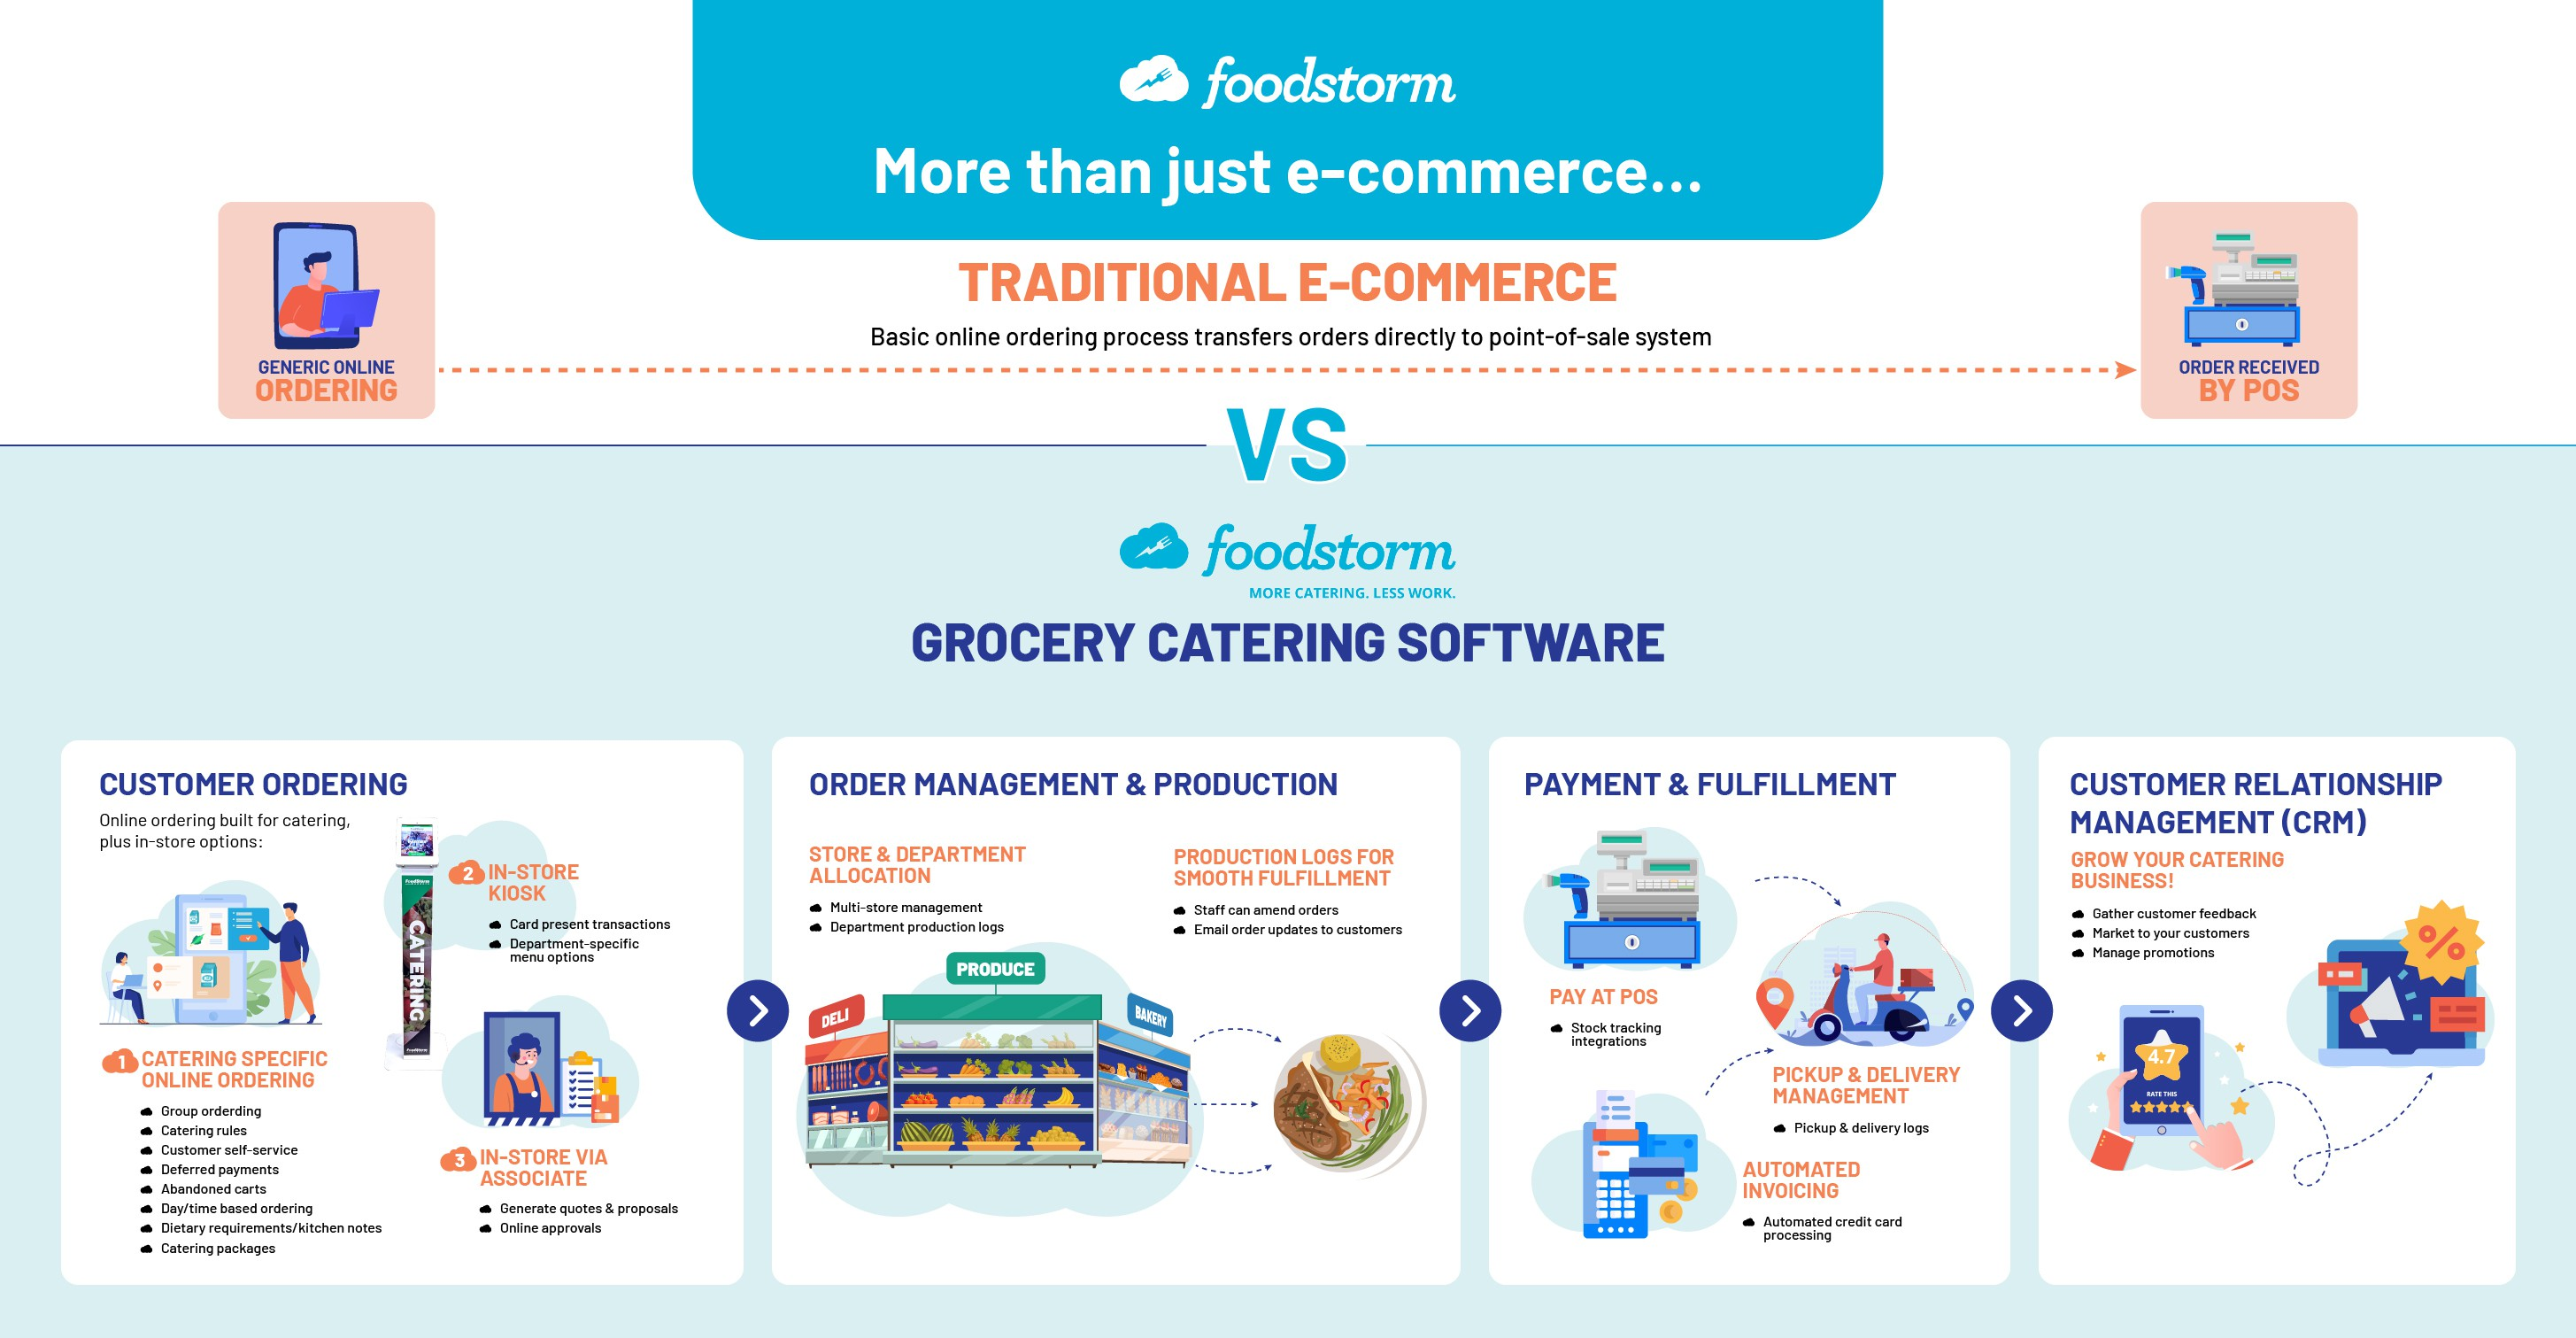 FoodStorm Grocery Catering: Order Process Graphic